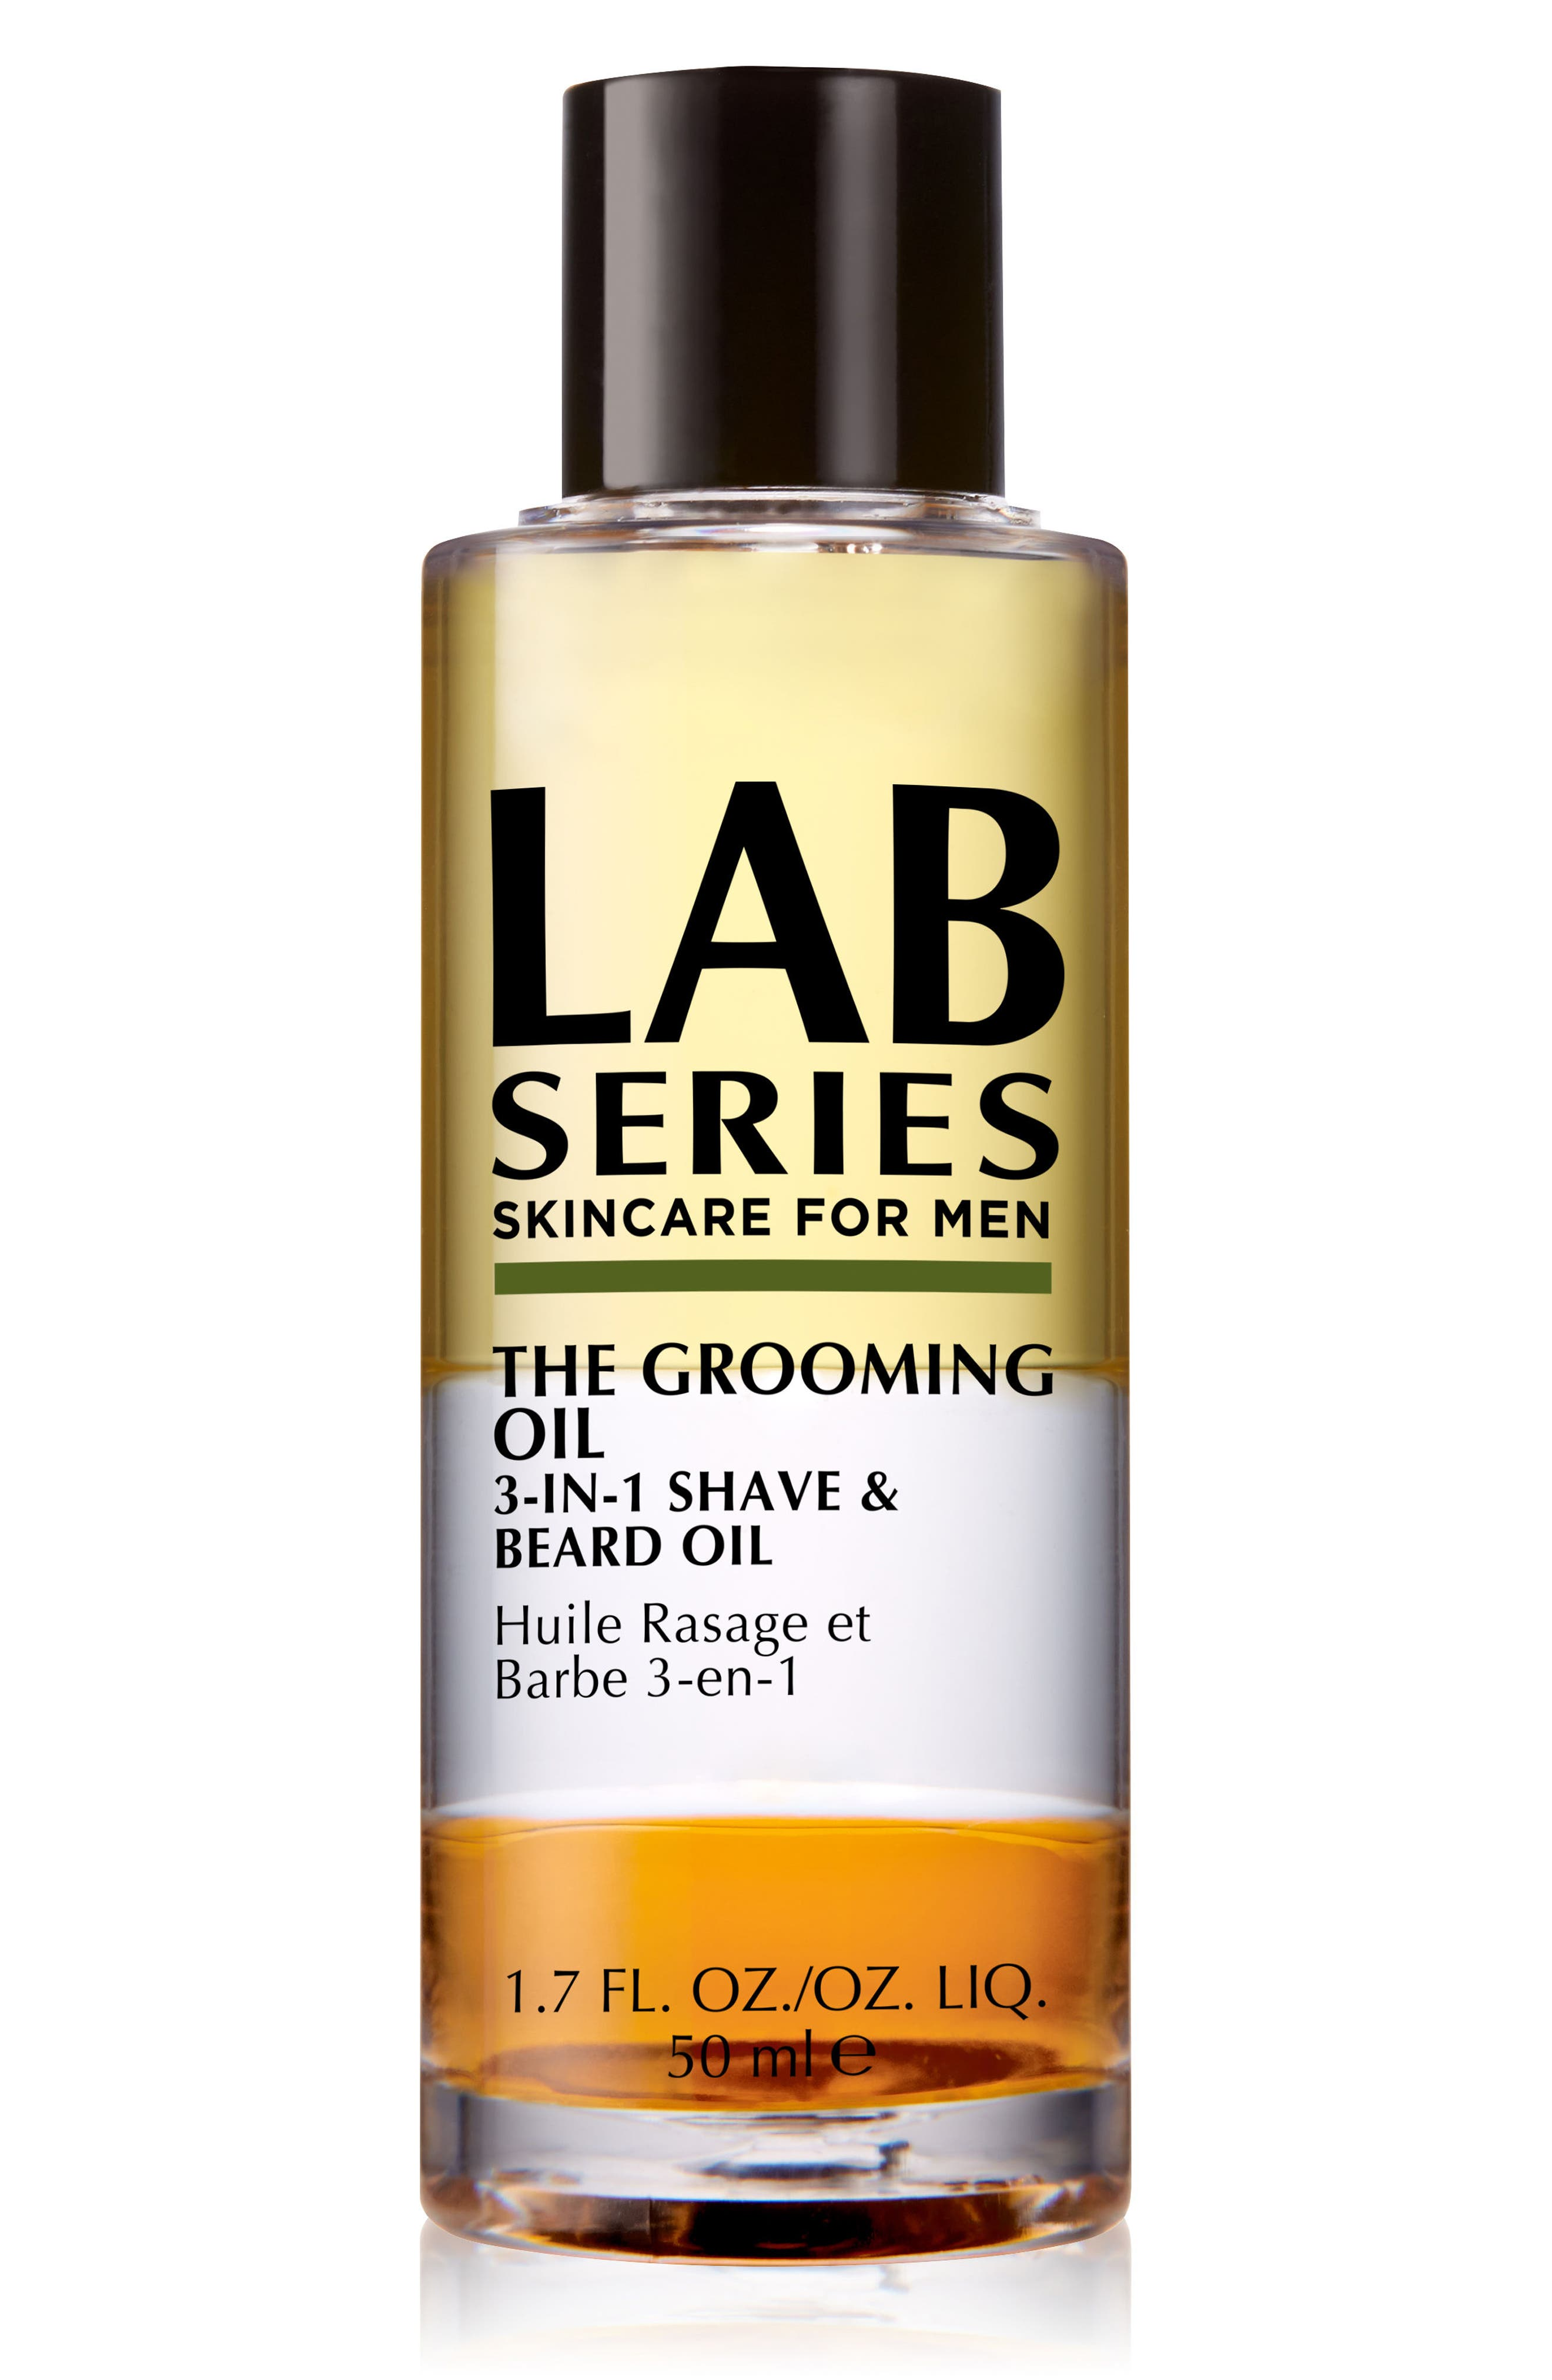 What it is: A triple-blend grooming oil that delivers an all-in-one solution for shave and beard care. What it does: It\\\'s formulated with sea buckthorn oil, jojoba oil and sweet almond oil along with vitamins and hydrators to tackle each grooming need. When used as a pre-shave formula, it cushions skin and enhances glide for an extra layer of protection underneath your shaving cream. When shaving, it ensures precision for transparent shaving or